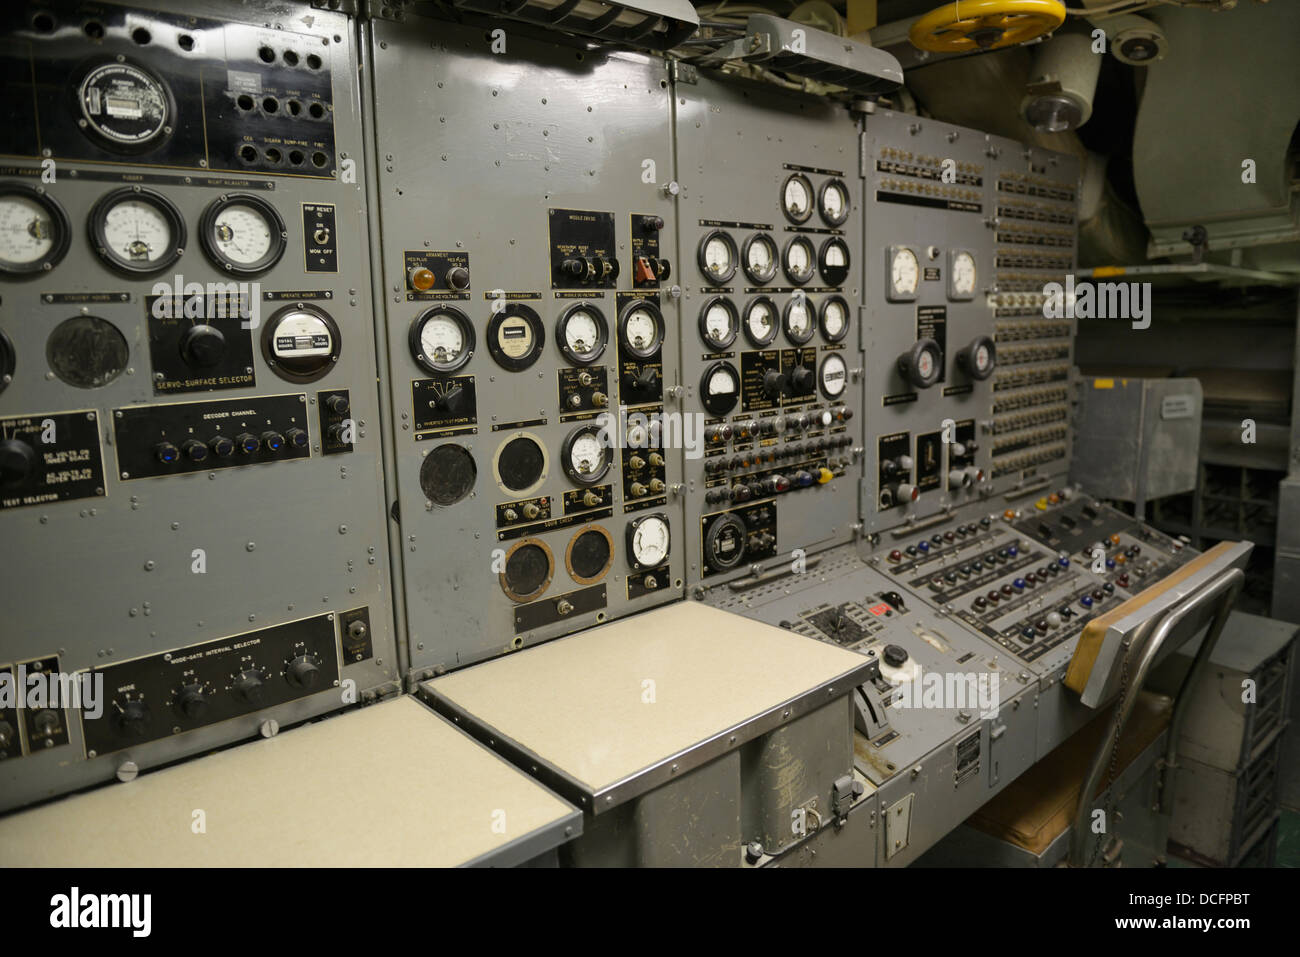 Control panel in a submarine, the USS Growler (SSG-577), Intrepid Sea, Air and Space Museum - Stock Image